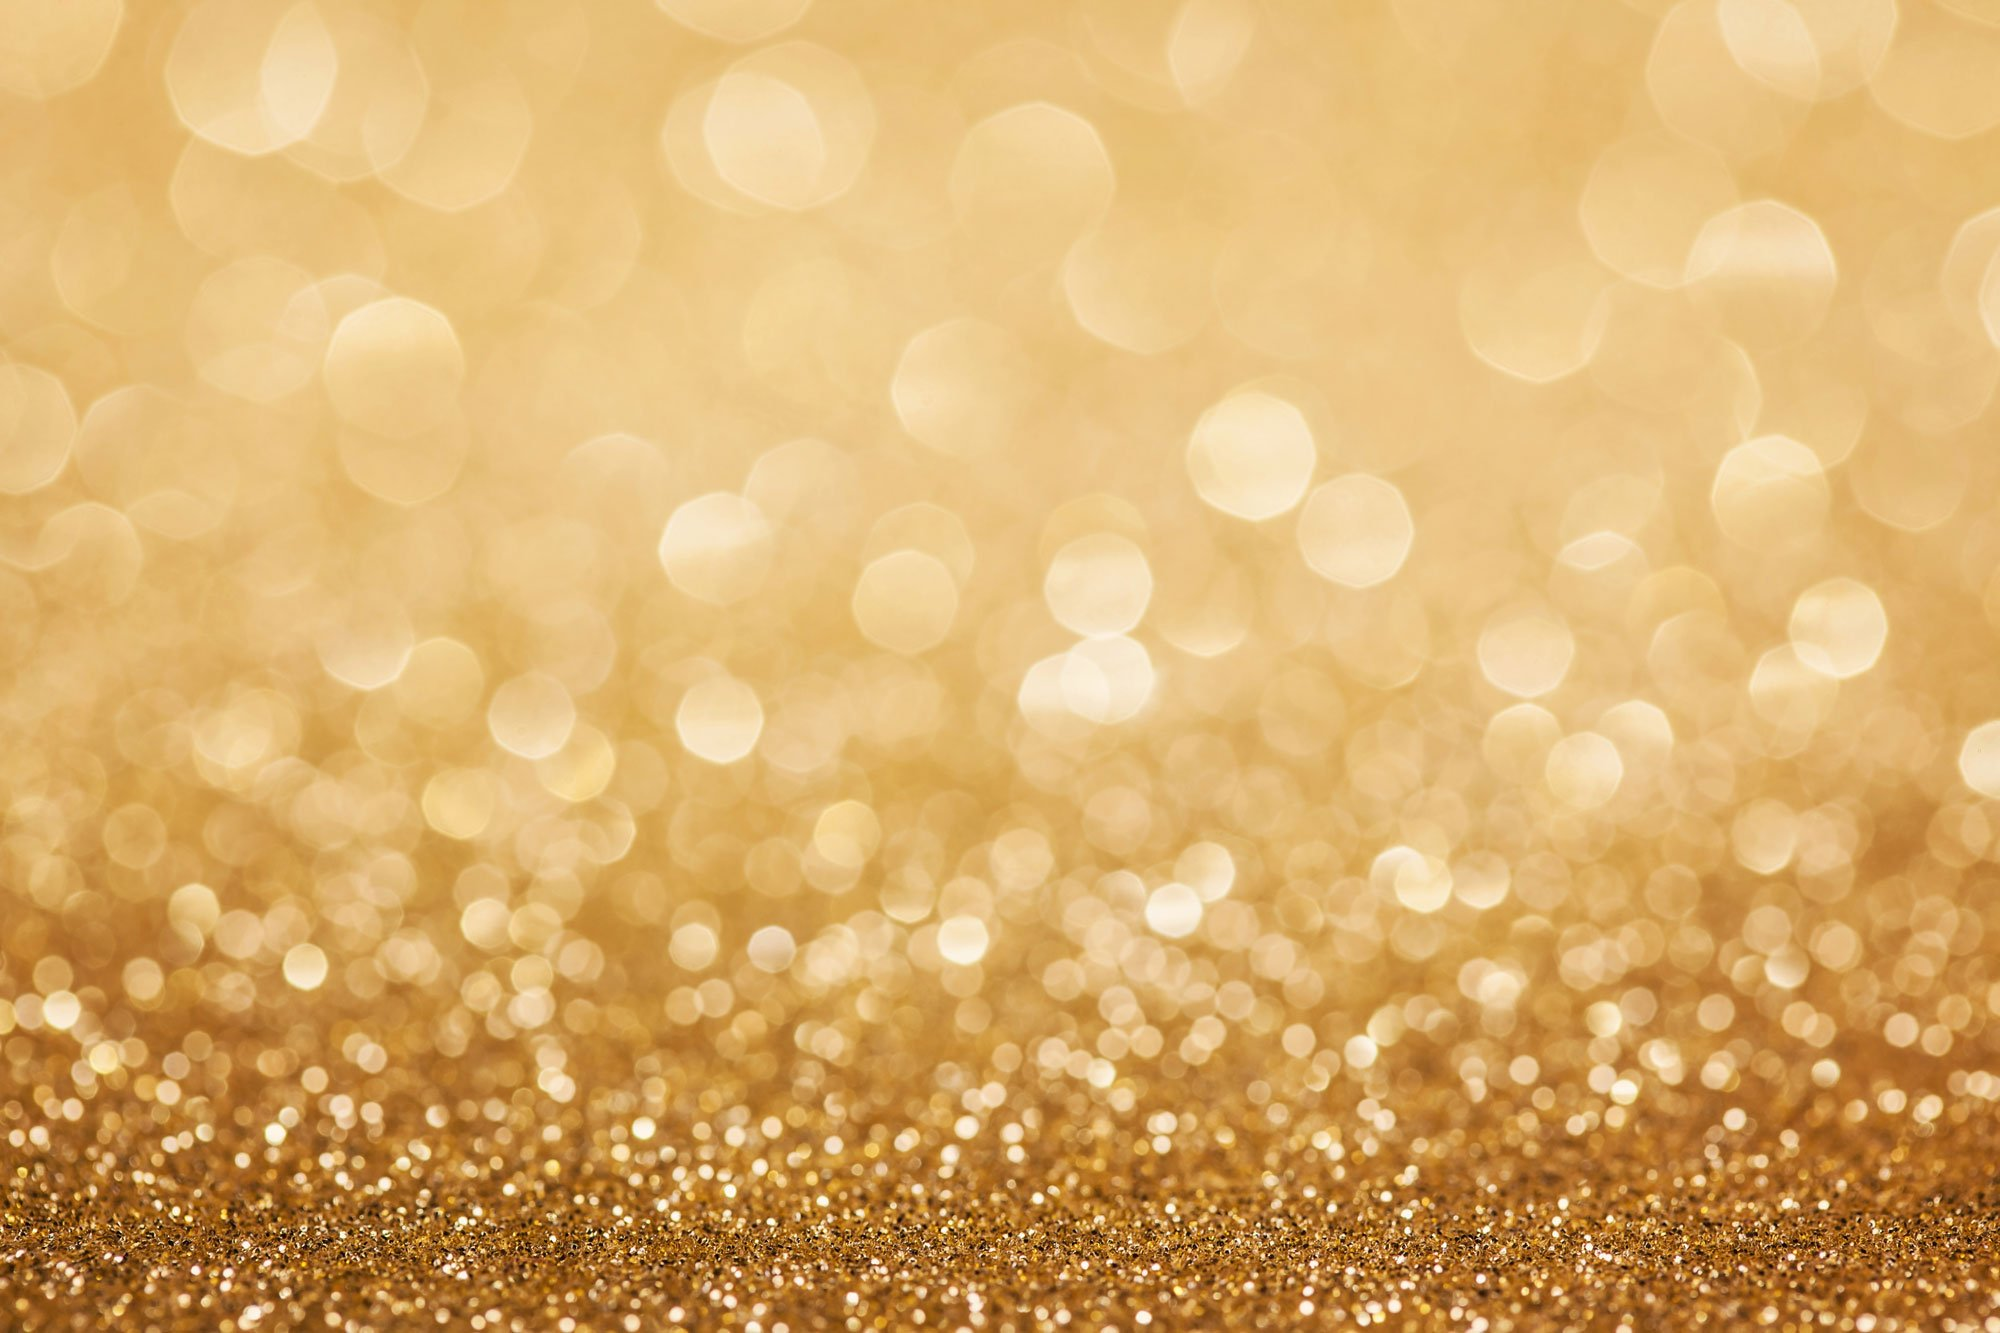 Gold glitter background wallpaper wallpapersafari for Cheap glitter wallpaper